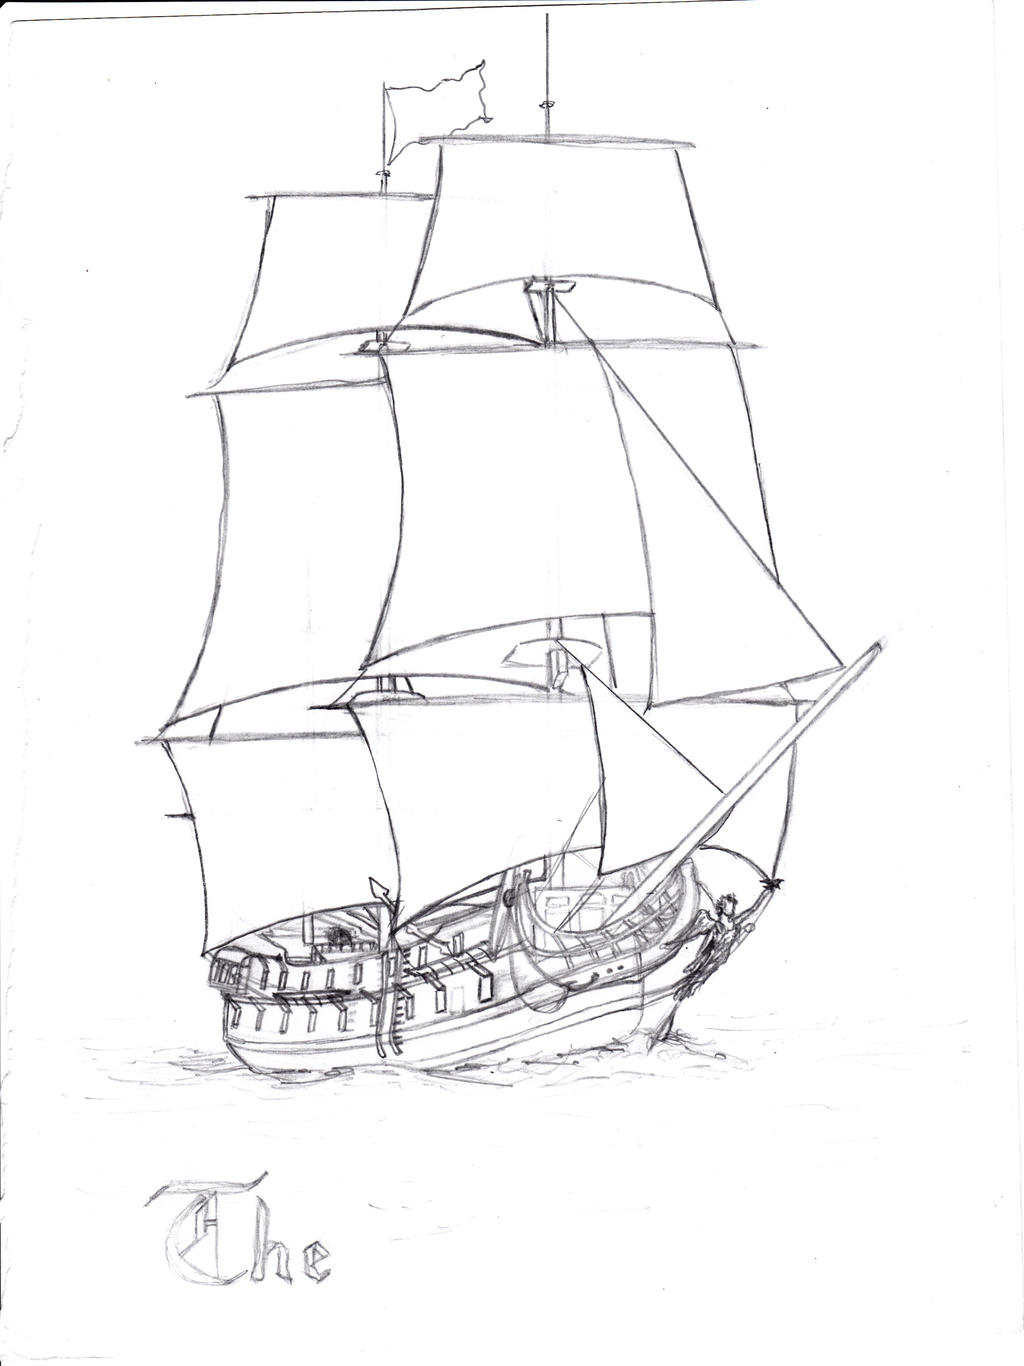 sketch of the black pearl pirate ship coloring pages Pirates of the Caribbean Coloring  Black Pearl Coloring Pages